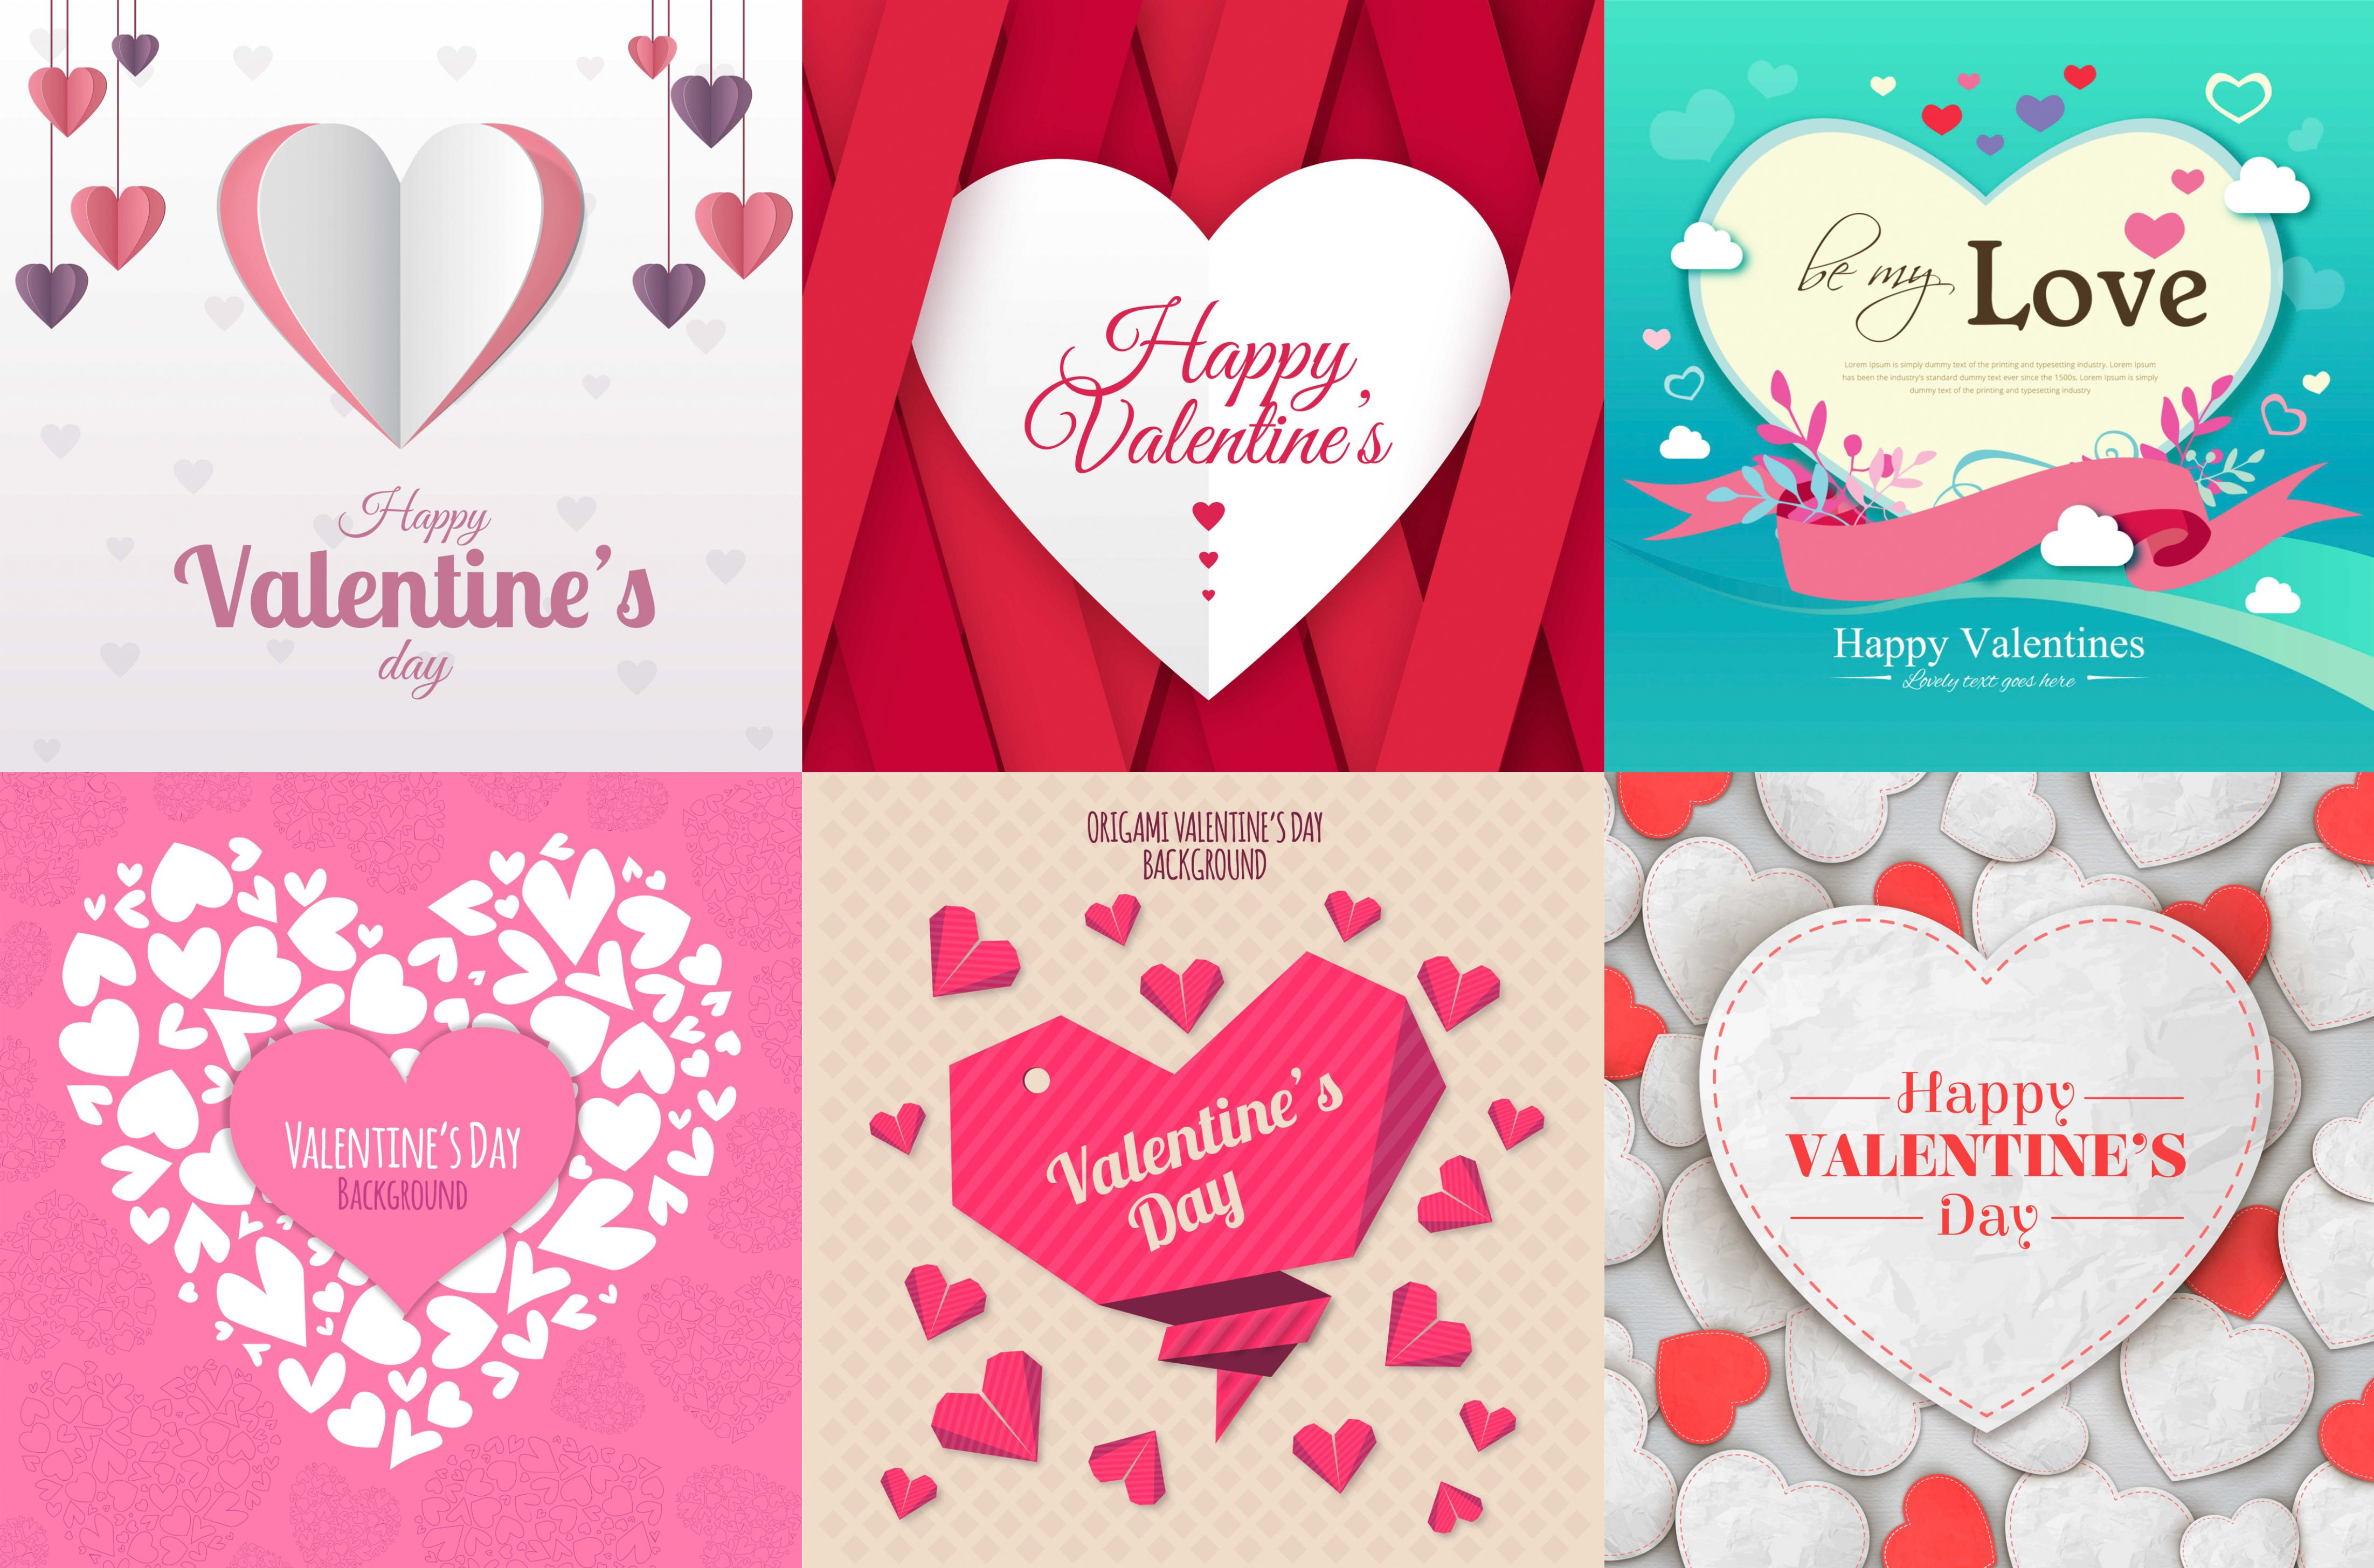 Set of 6 vectors Valentines cards designs with big hearts in